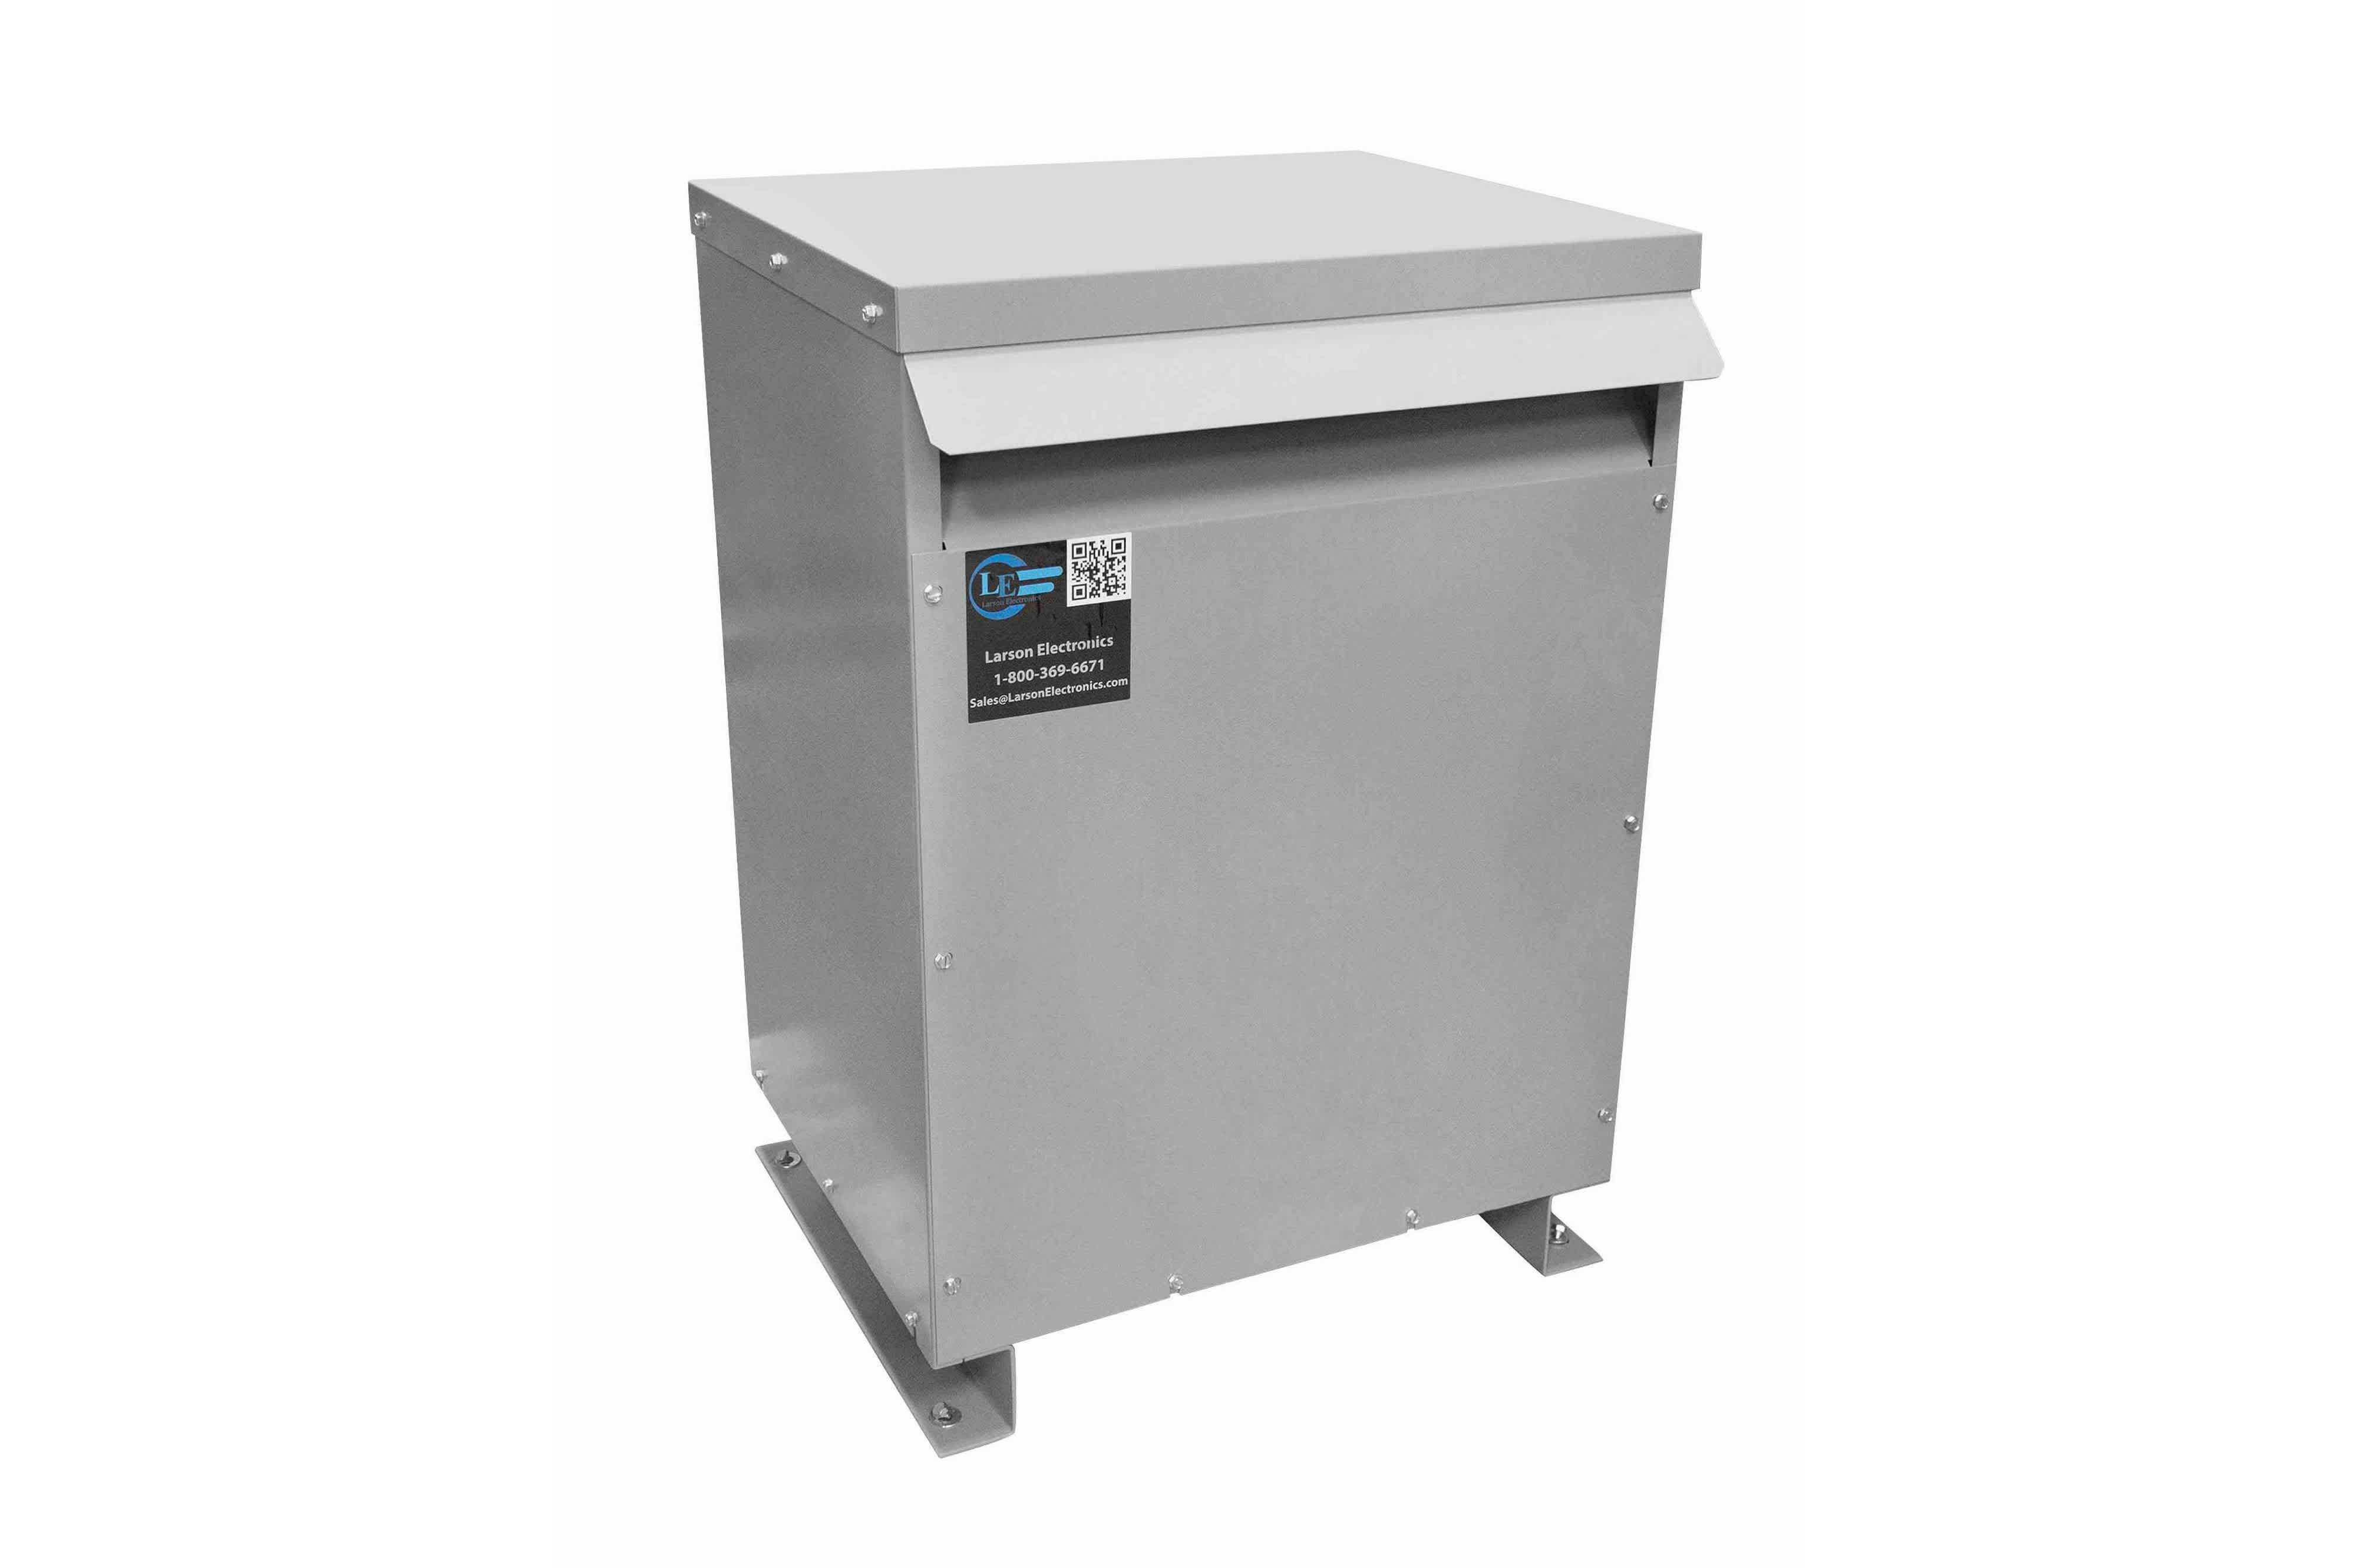 800 kVA 3PH DOE Transformer, 400V Delta Primary, 480Y/277 Wye-N Secondary, N3R, Ventilated, 60 Hz